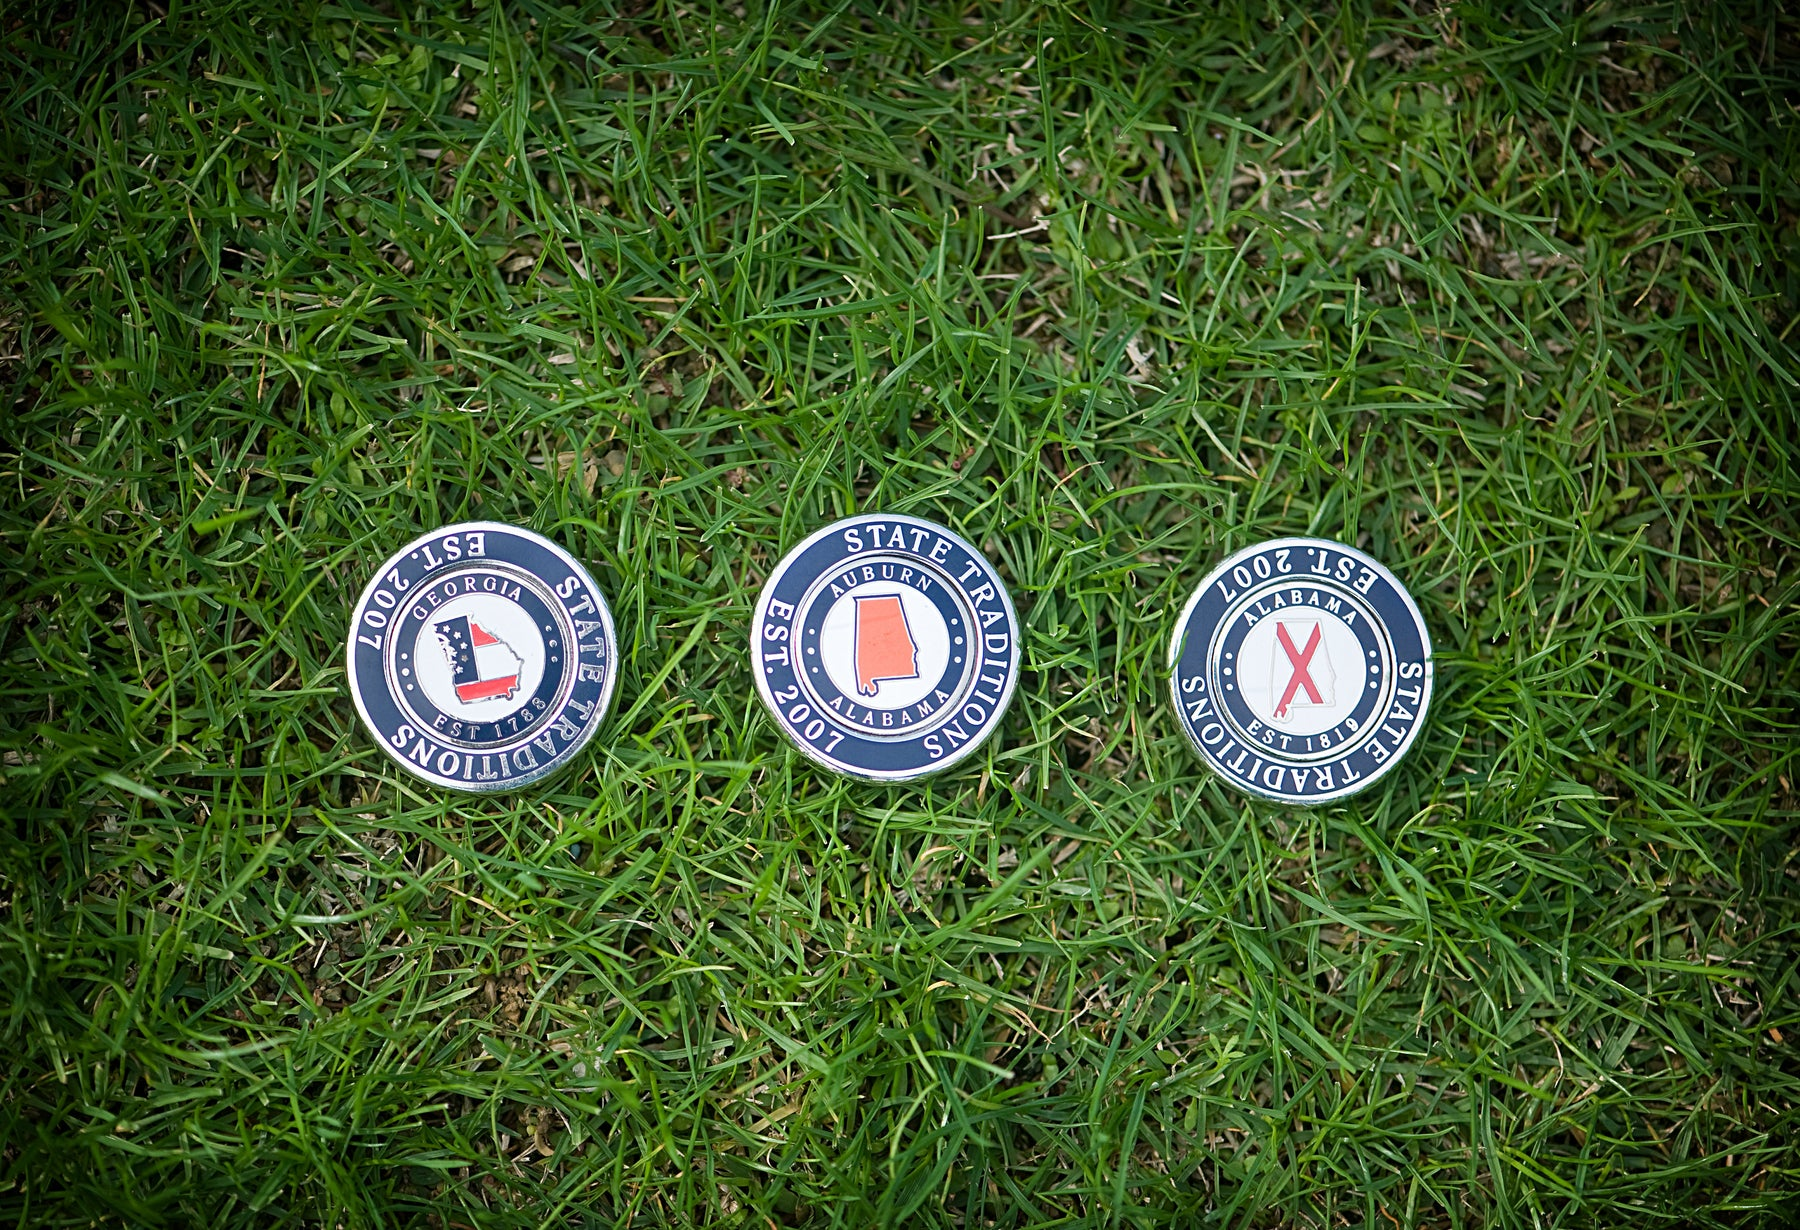 Golf, Ball Marker, Spring 21, Birdie, Par, Alabama, Georgia, Green Grass, State Traditions Golf, Drive for Show Putt for Dough, Net5, Bogey Golf, transfusion